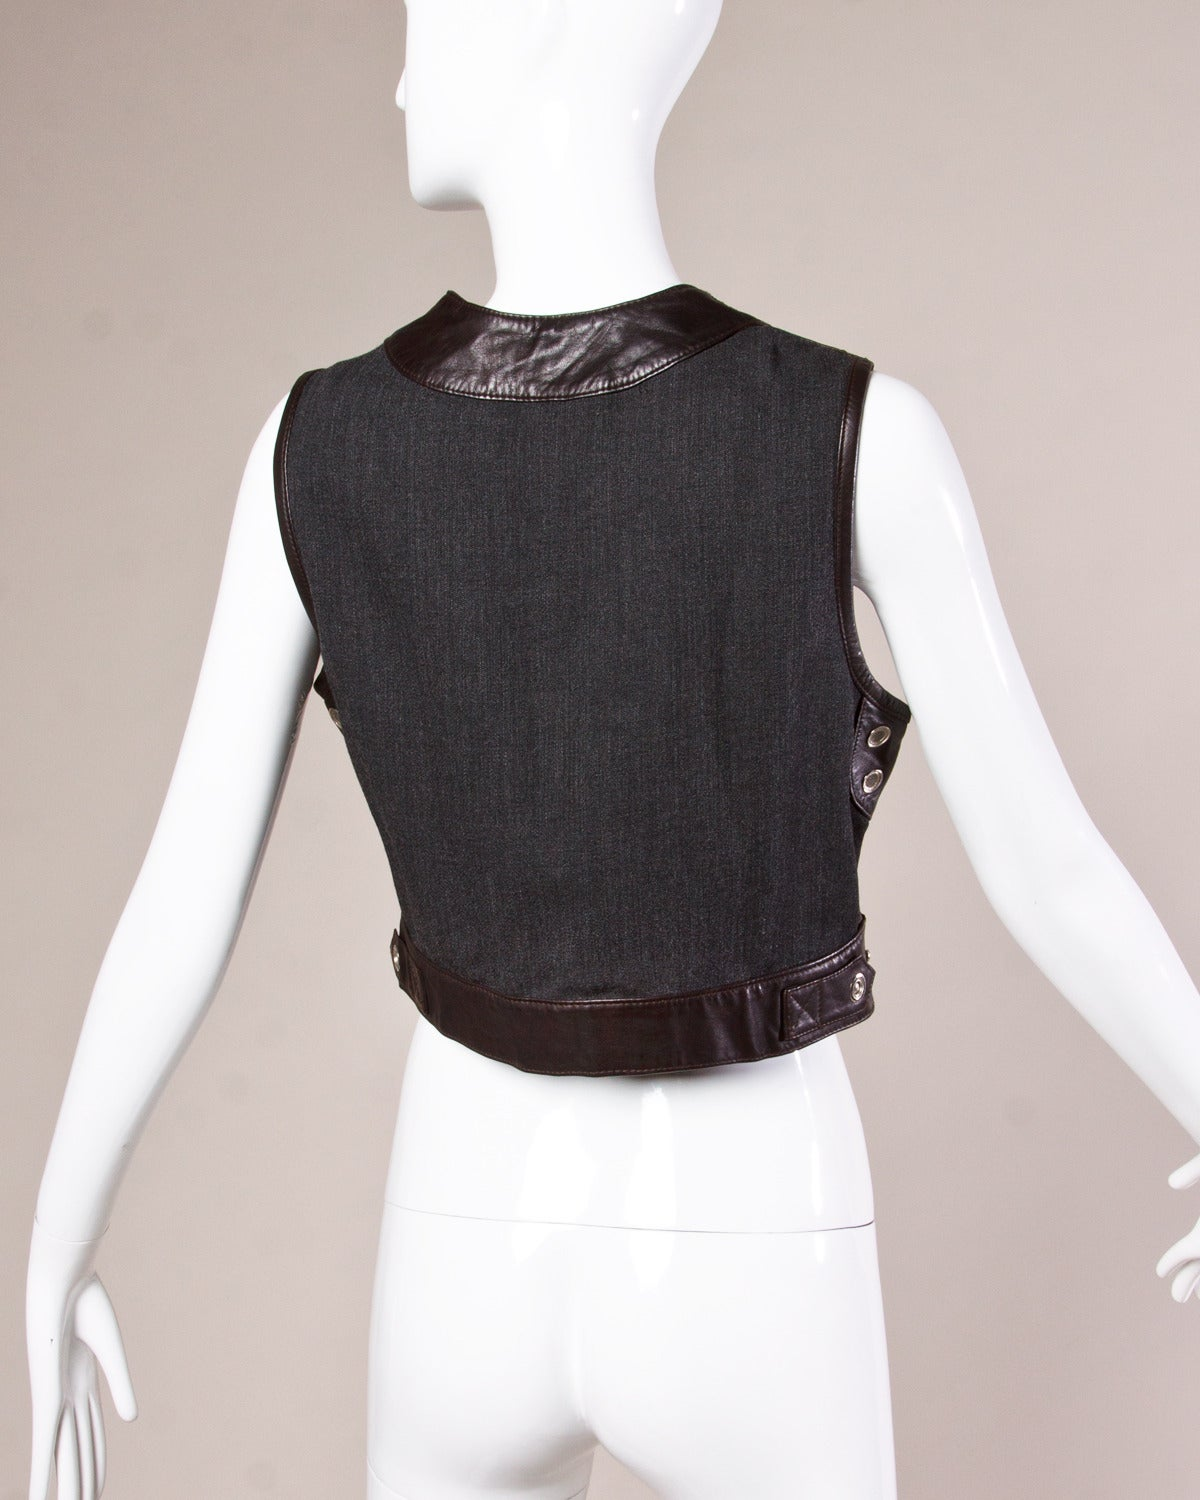 Black Emanuel Ungaro Vintage 1990s Cropped Leather Vest Top For Sale